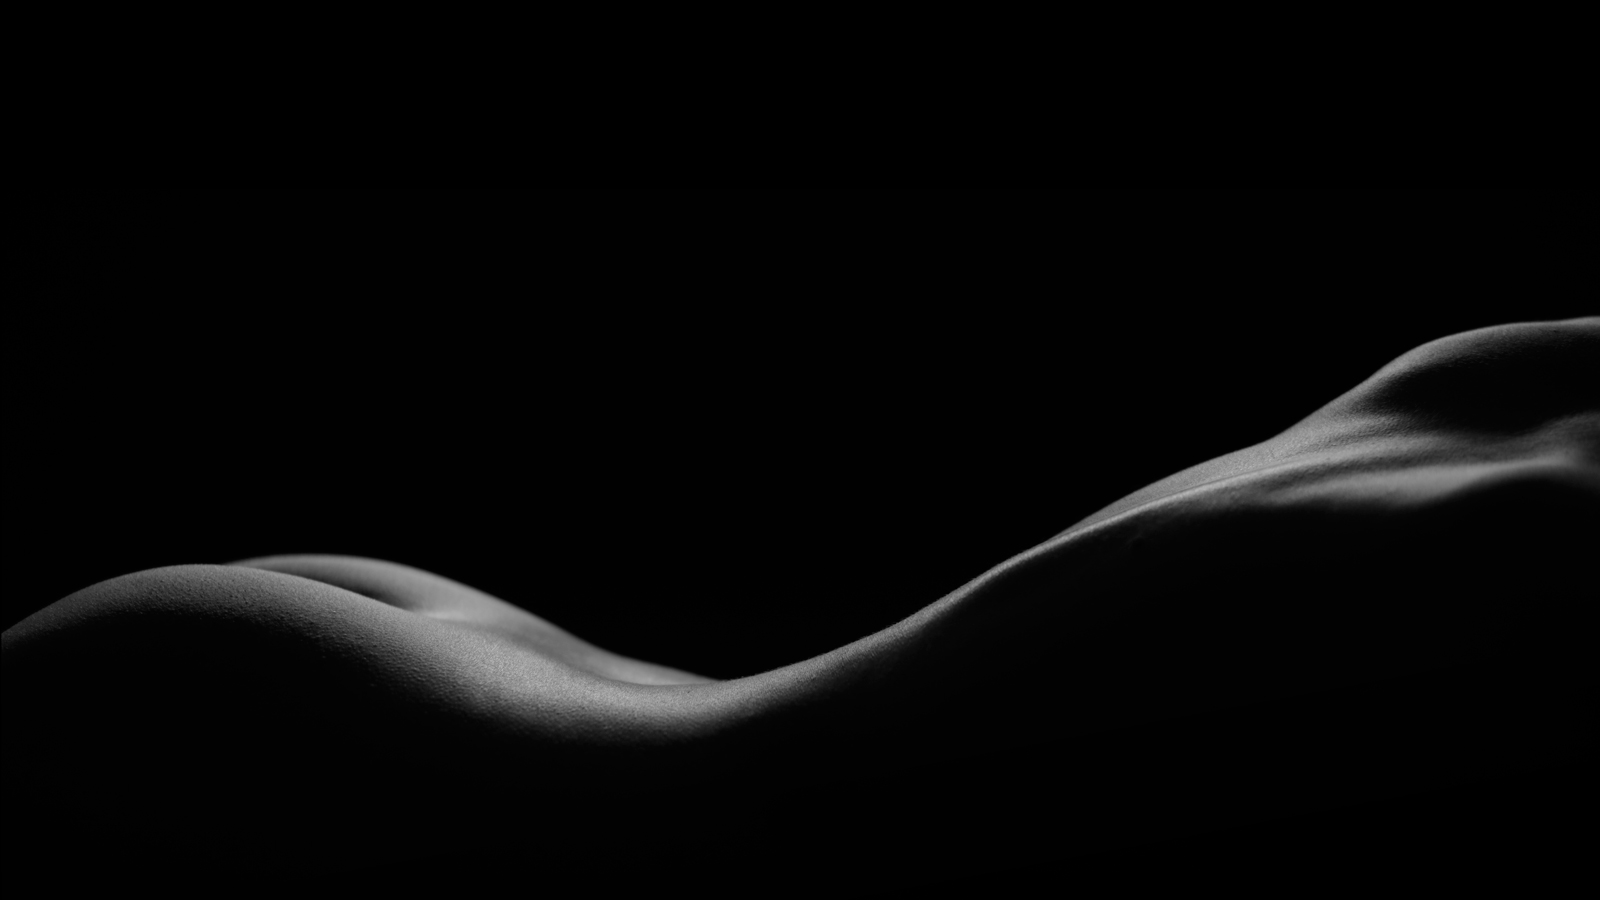 160208_WRBodyscapes_146.jpg